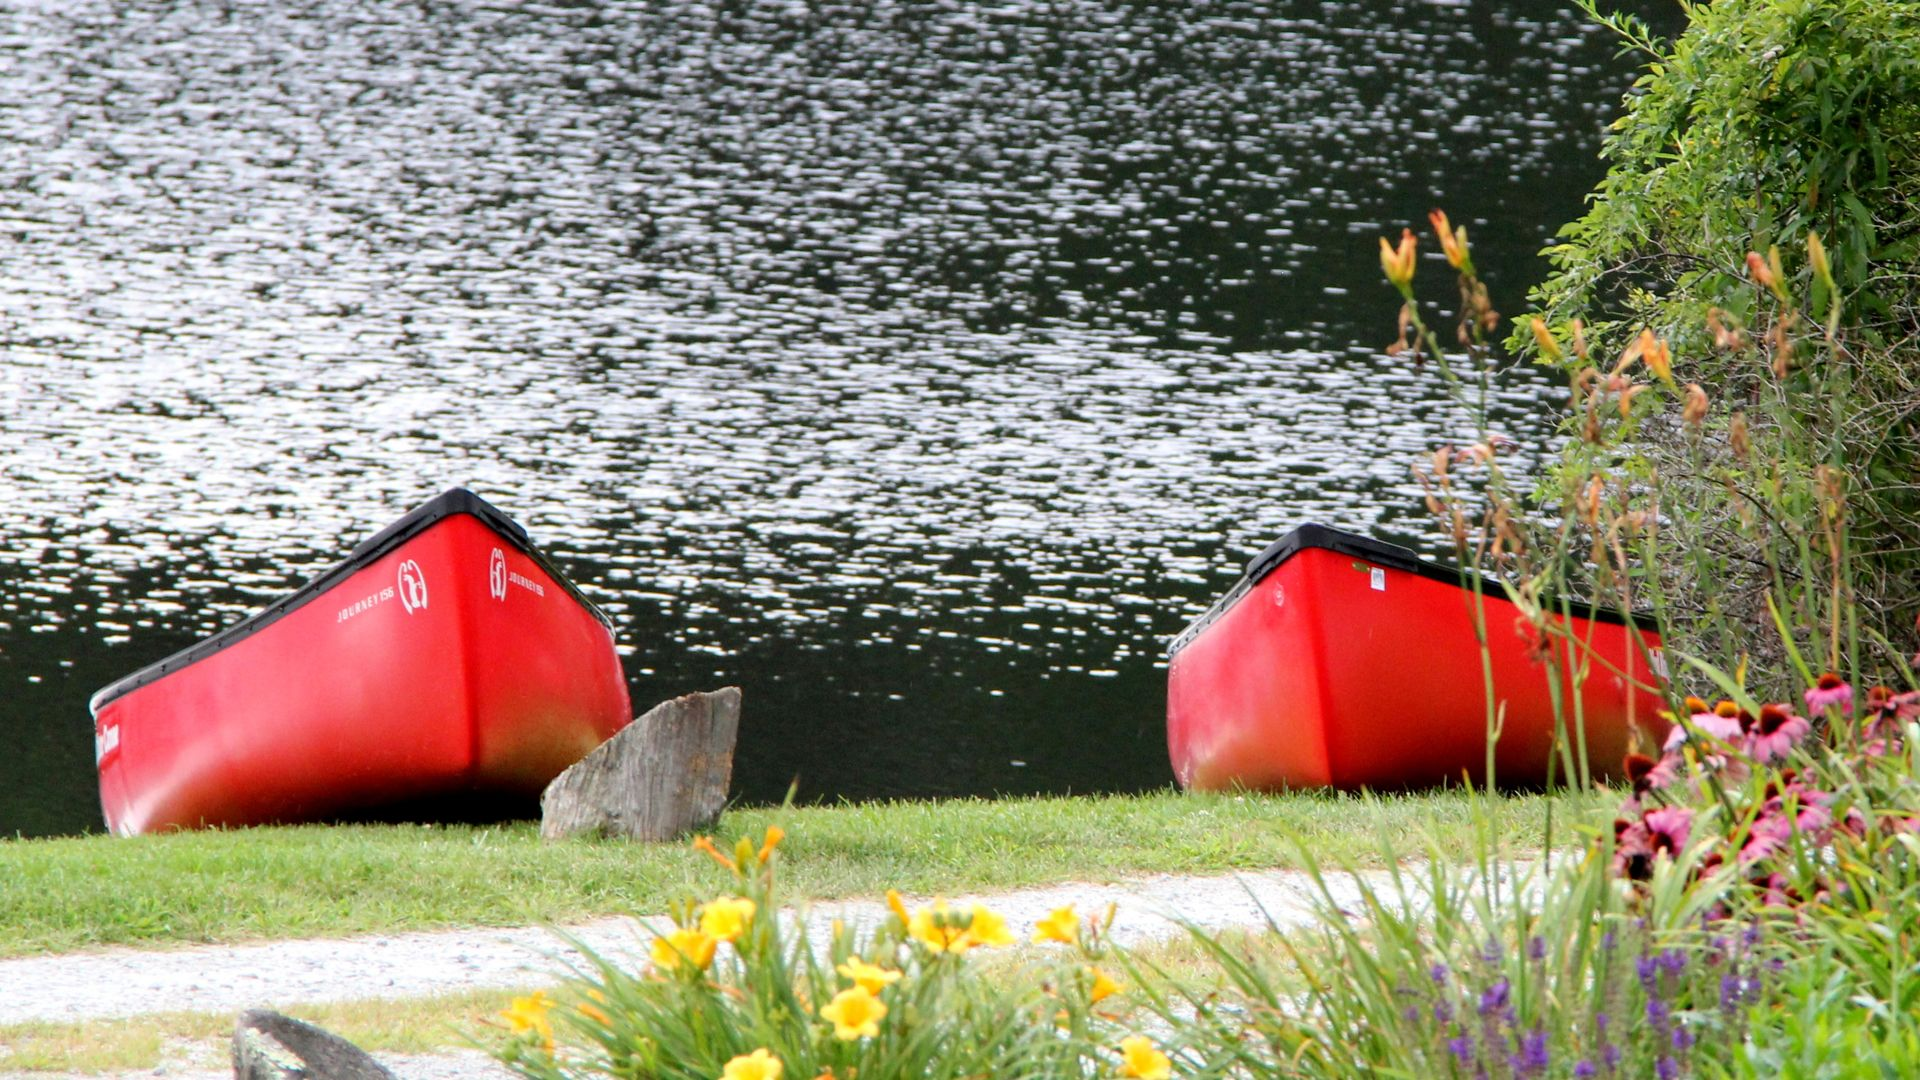 A Red And Yellow Boat Sitting In The Grass